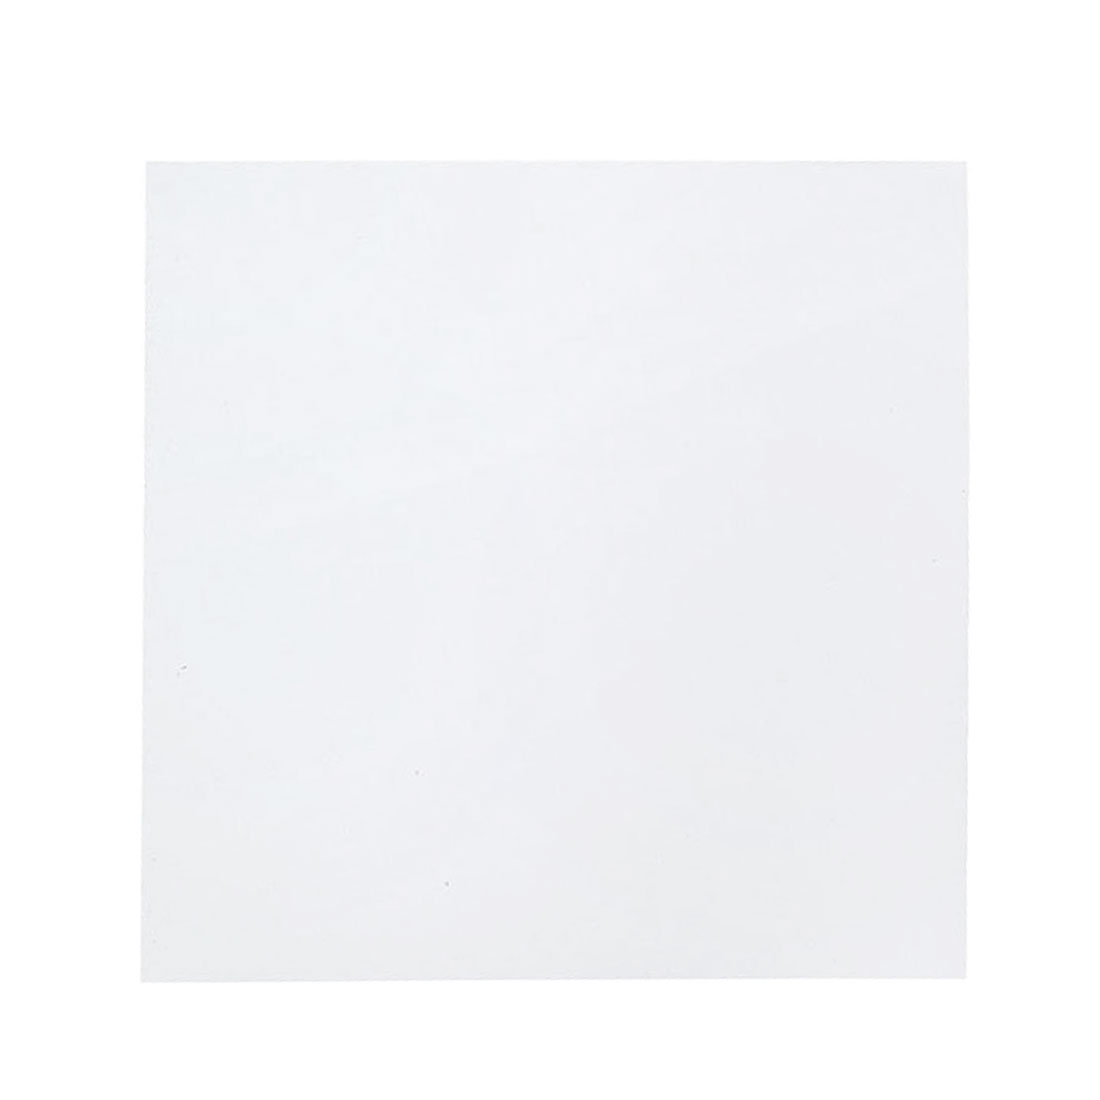 White Photo Photography Studio Shooting Display Reflection Board 60x60cm